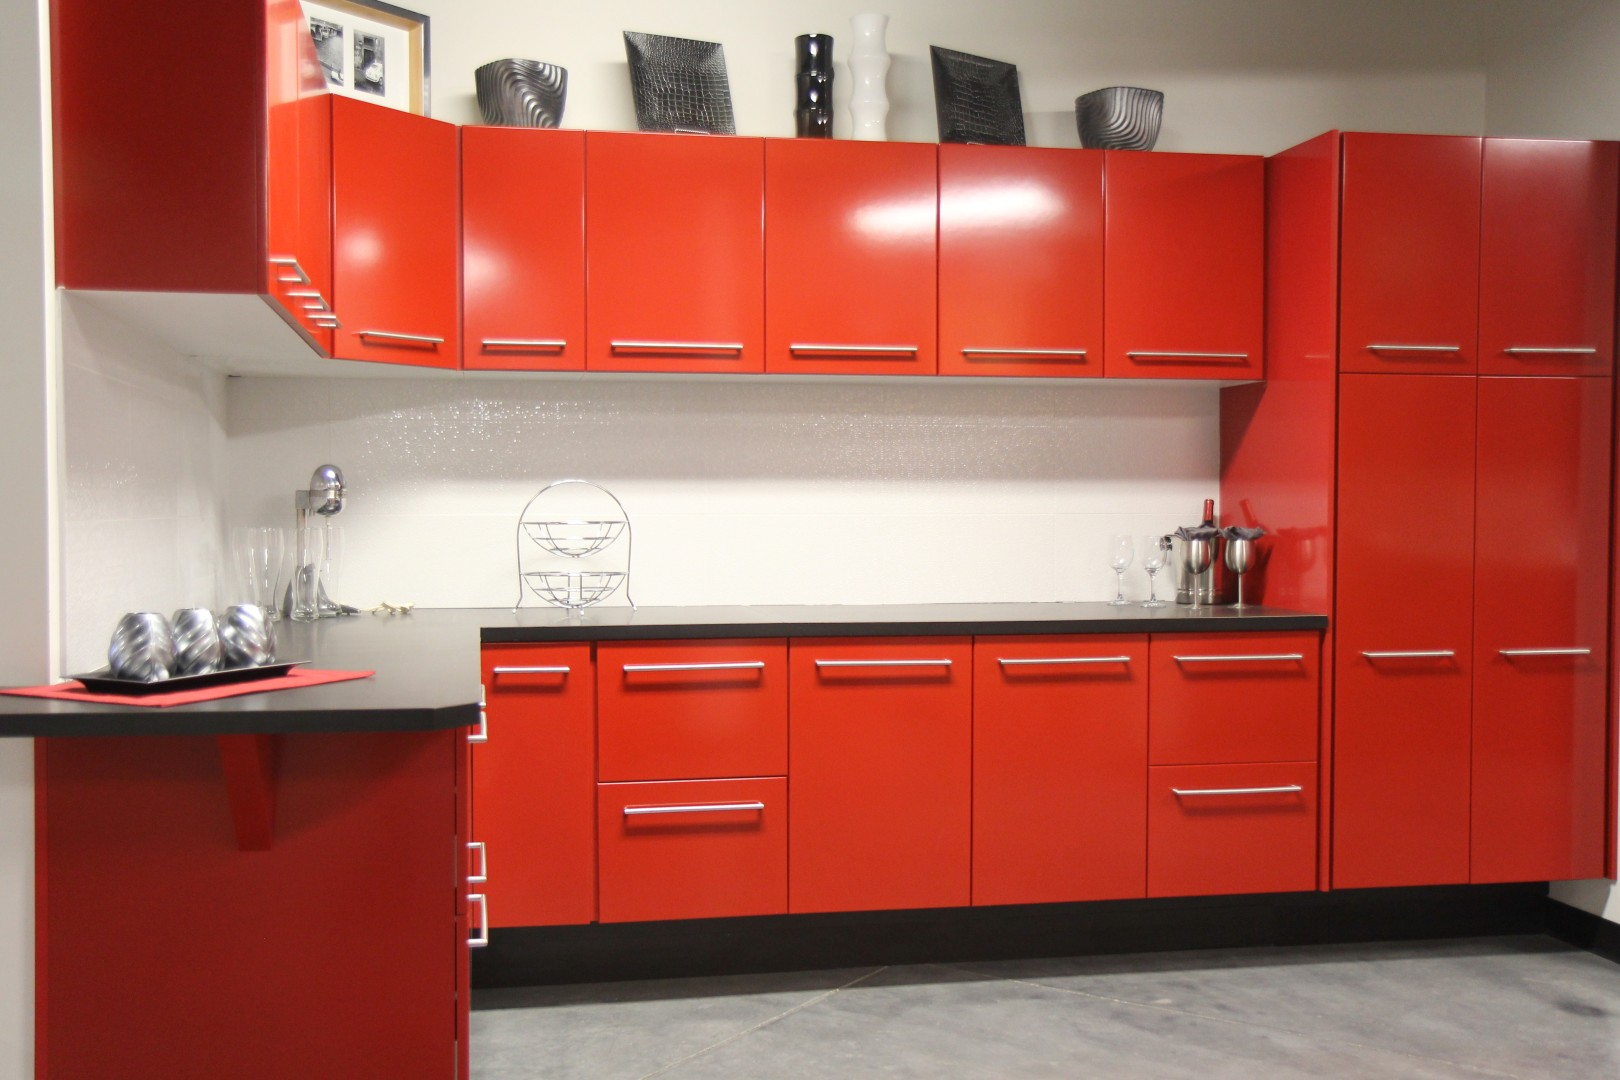 3 ways to beautify your kitchen with ikea kitchen design for Kitchen ideas white cabinets red walls